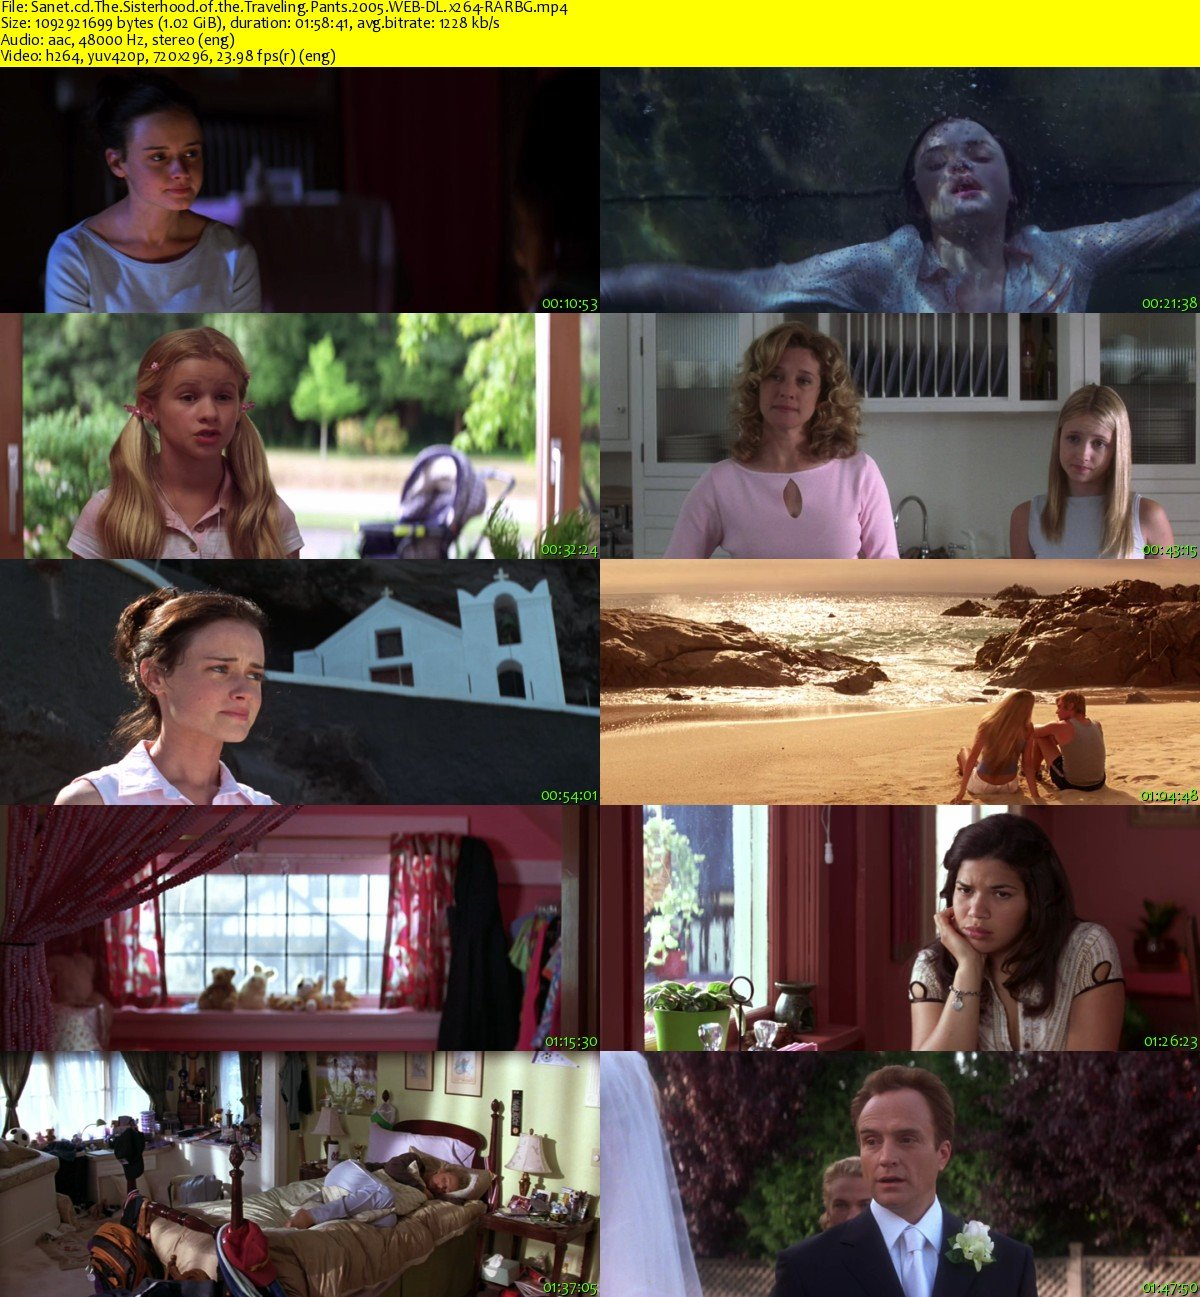 download the sisterhood of the traveling pants 2005 webdl